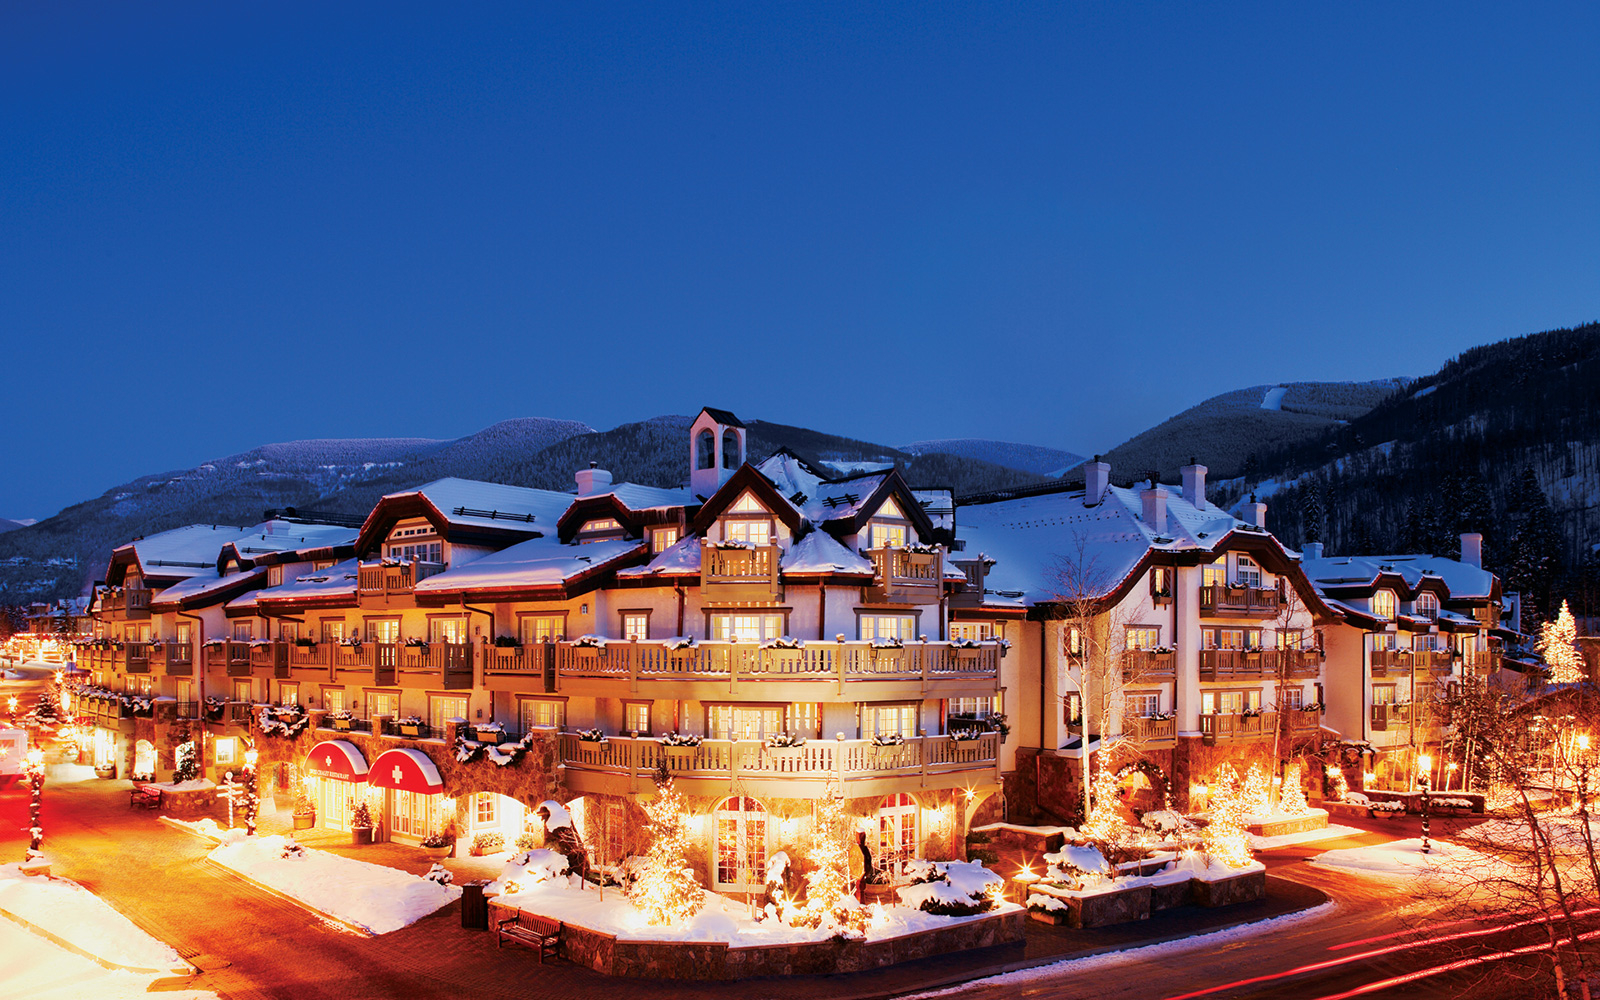 No. 3 Sonnenalp Resort of Vail, Colorado